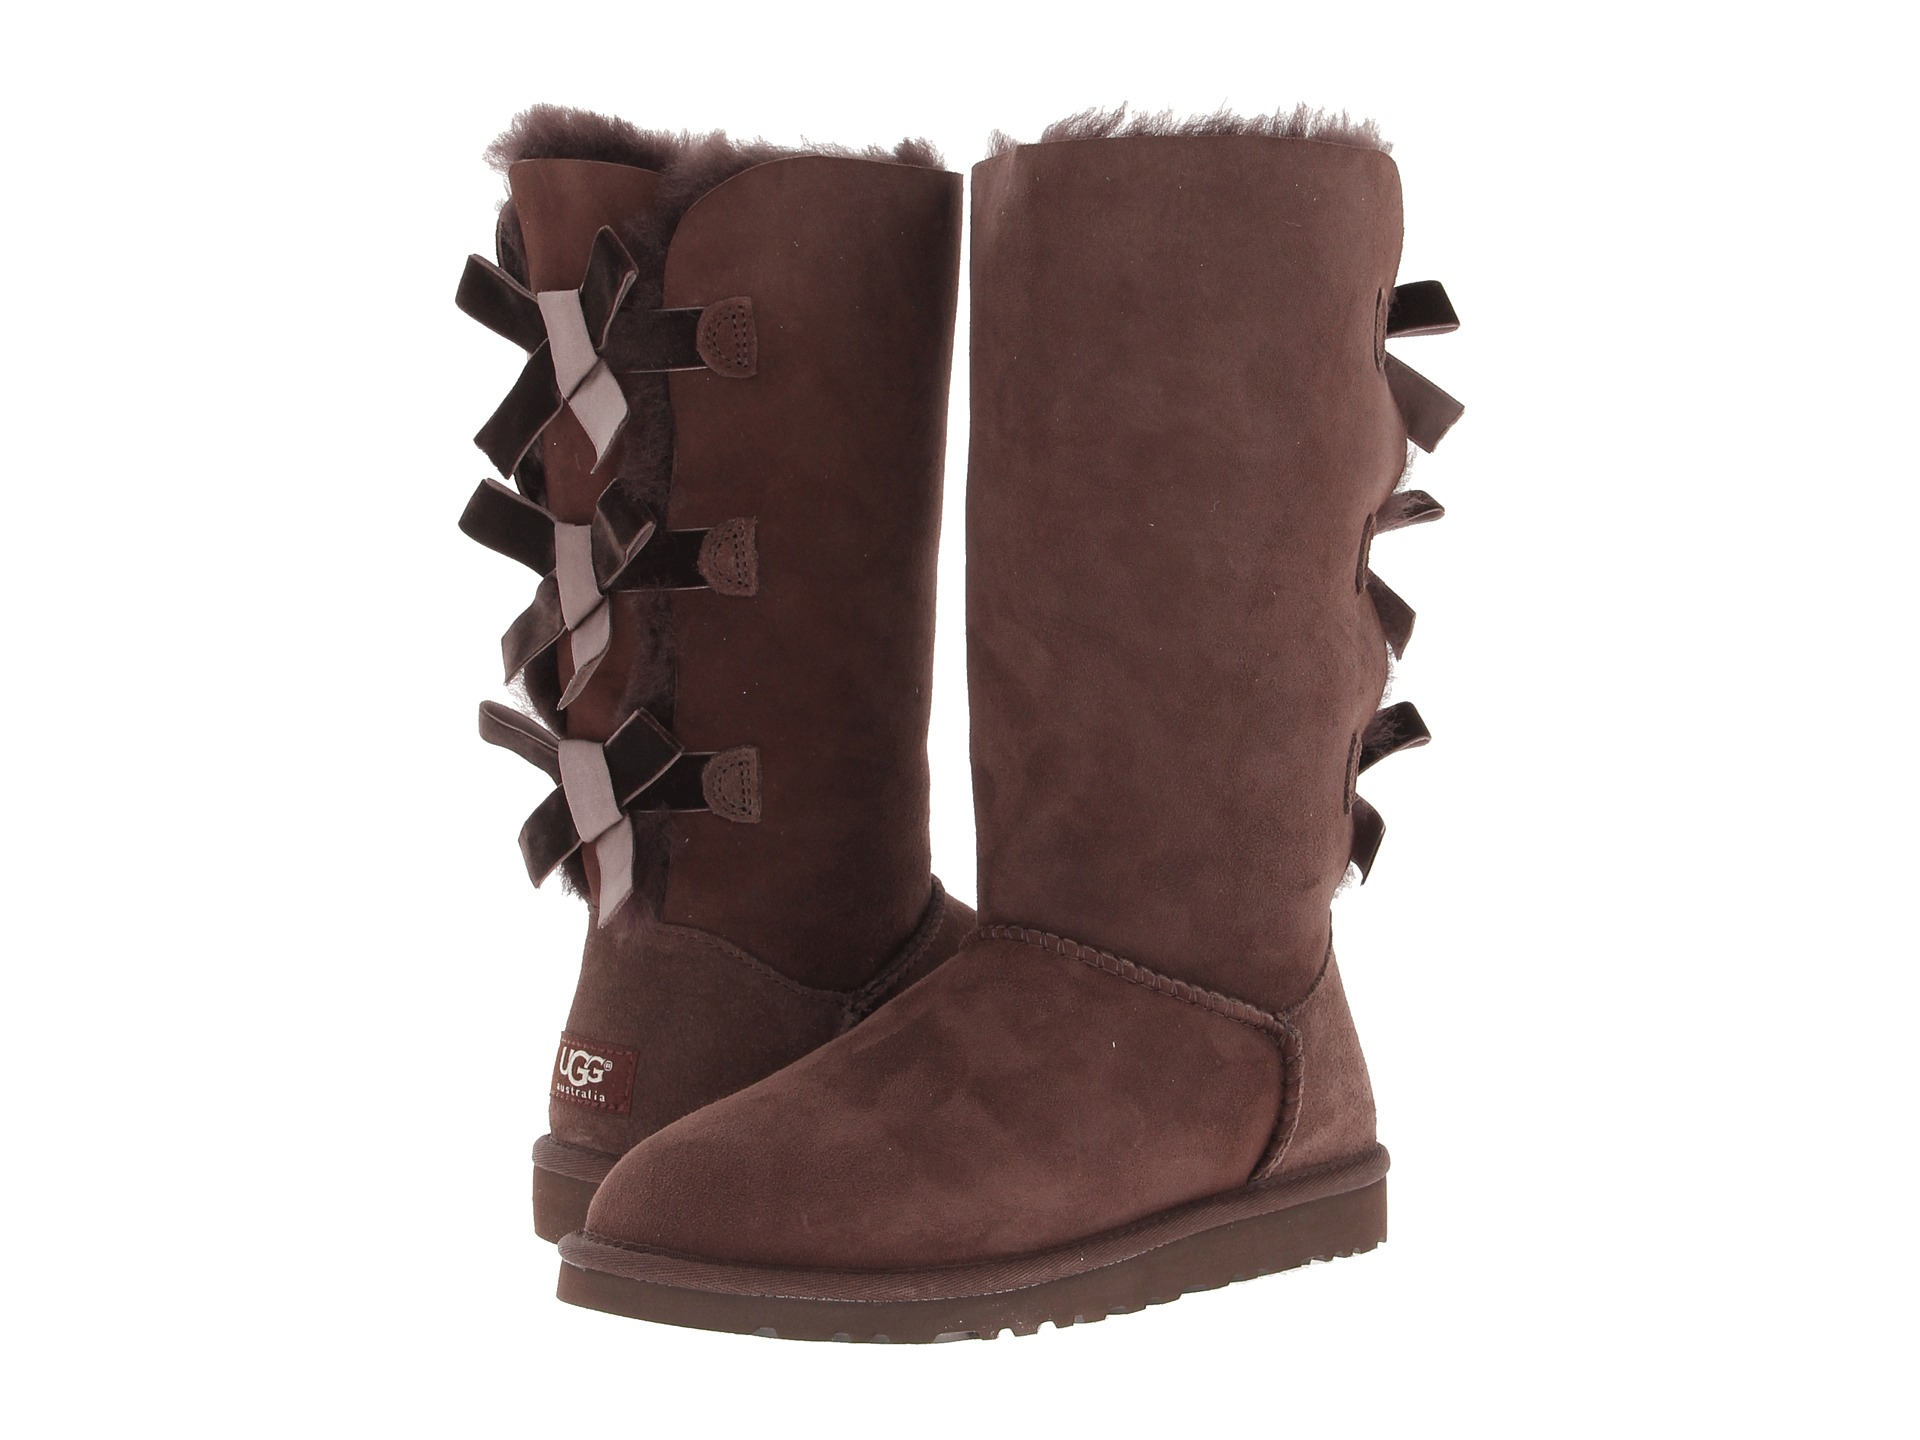 Ugg Bailey Bow Tall Boot Zappos Exclusive Shipped Free